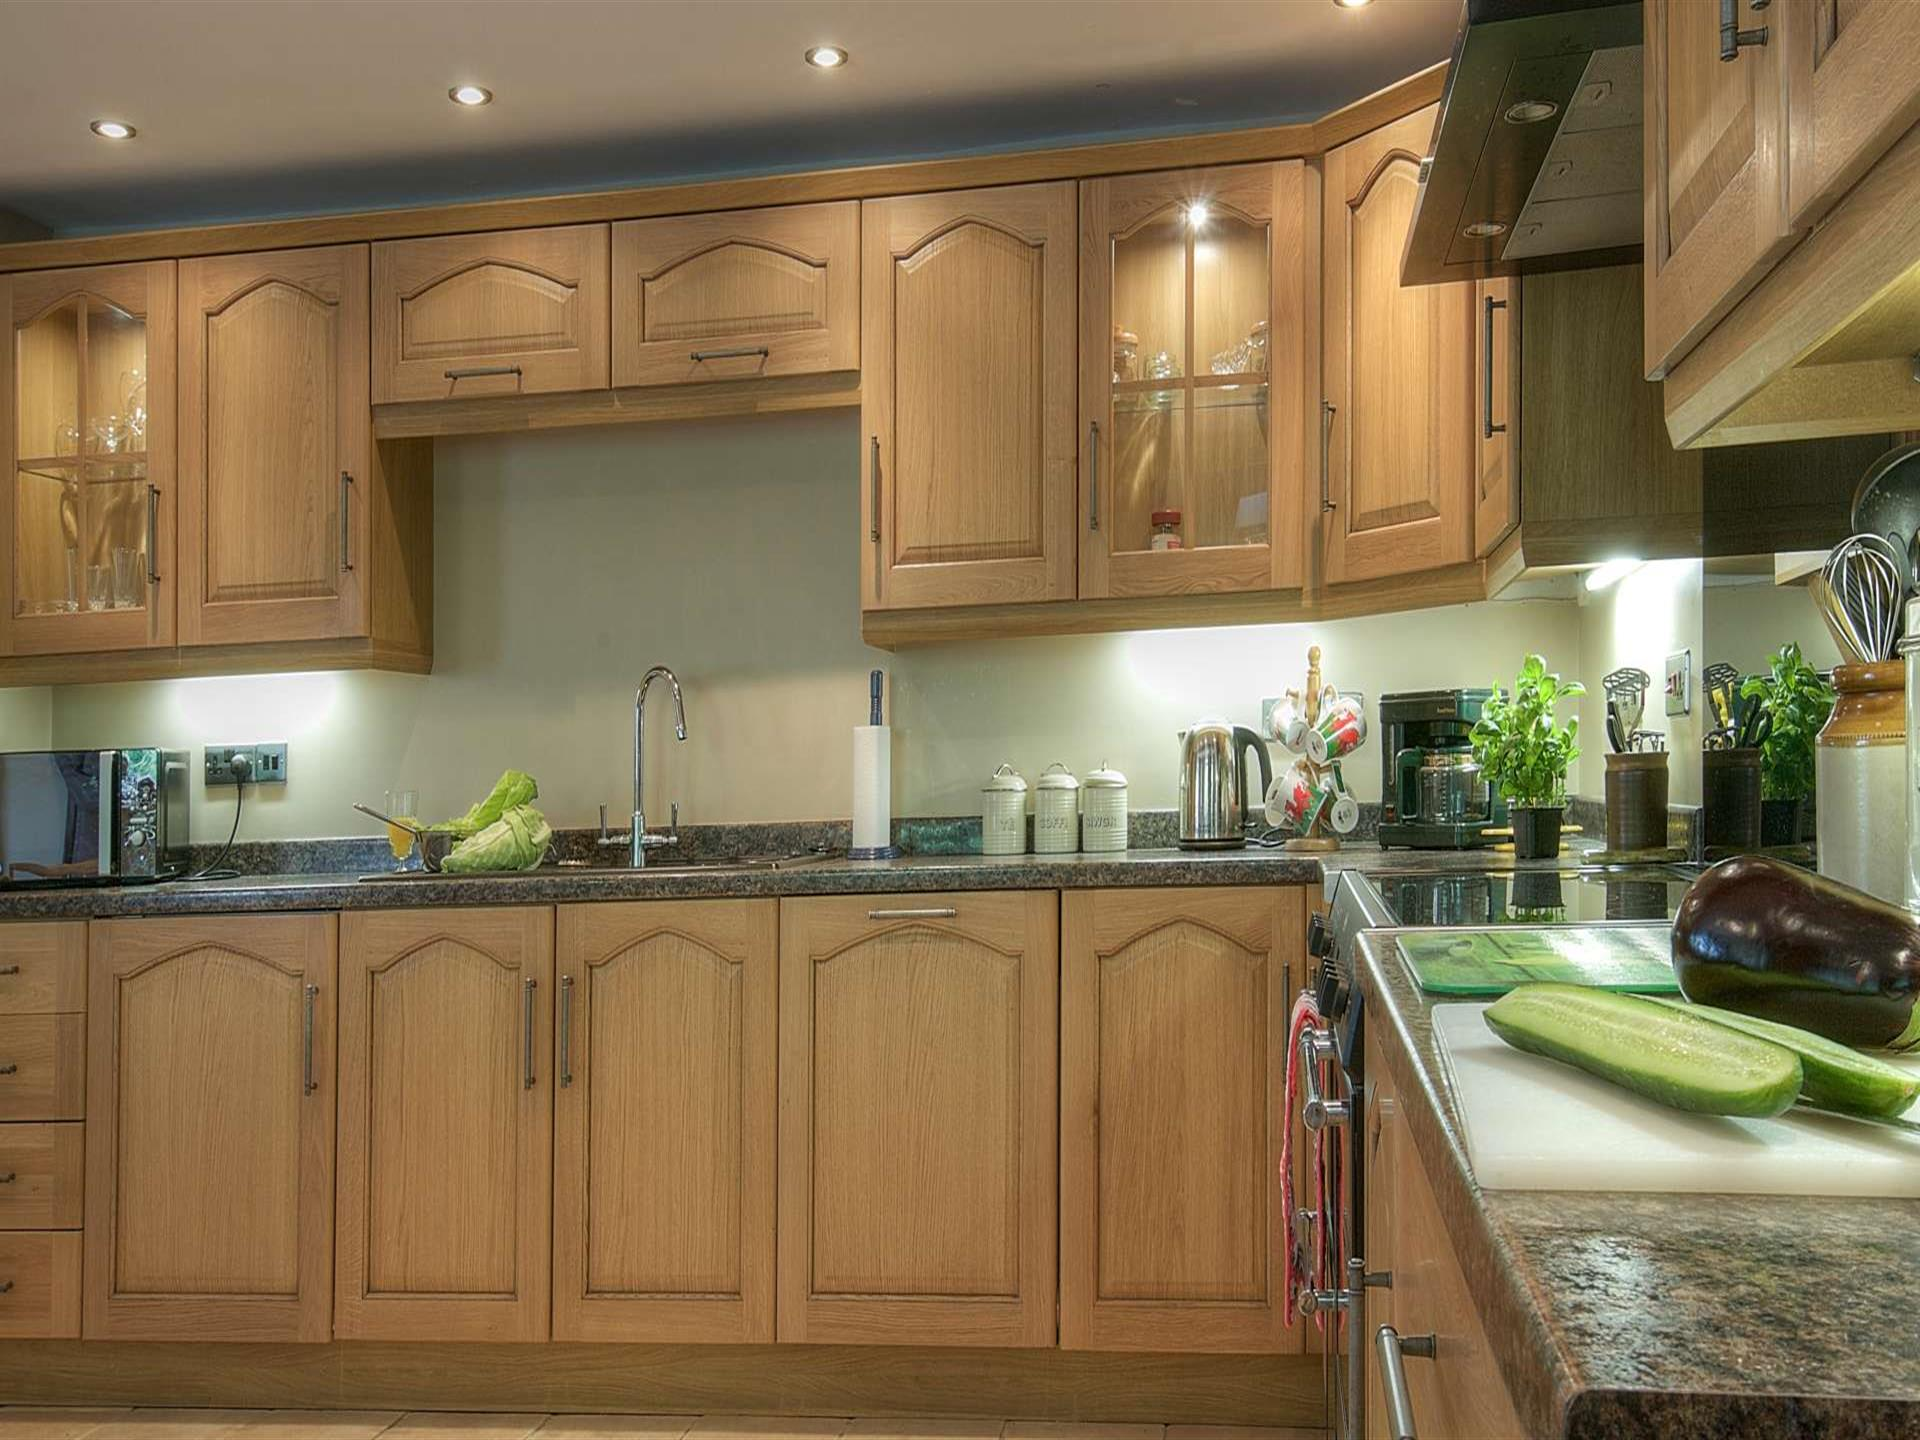 Pet friendly holiday cottage wales - kitchen